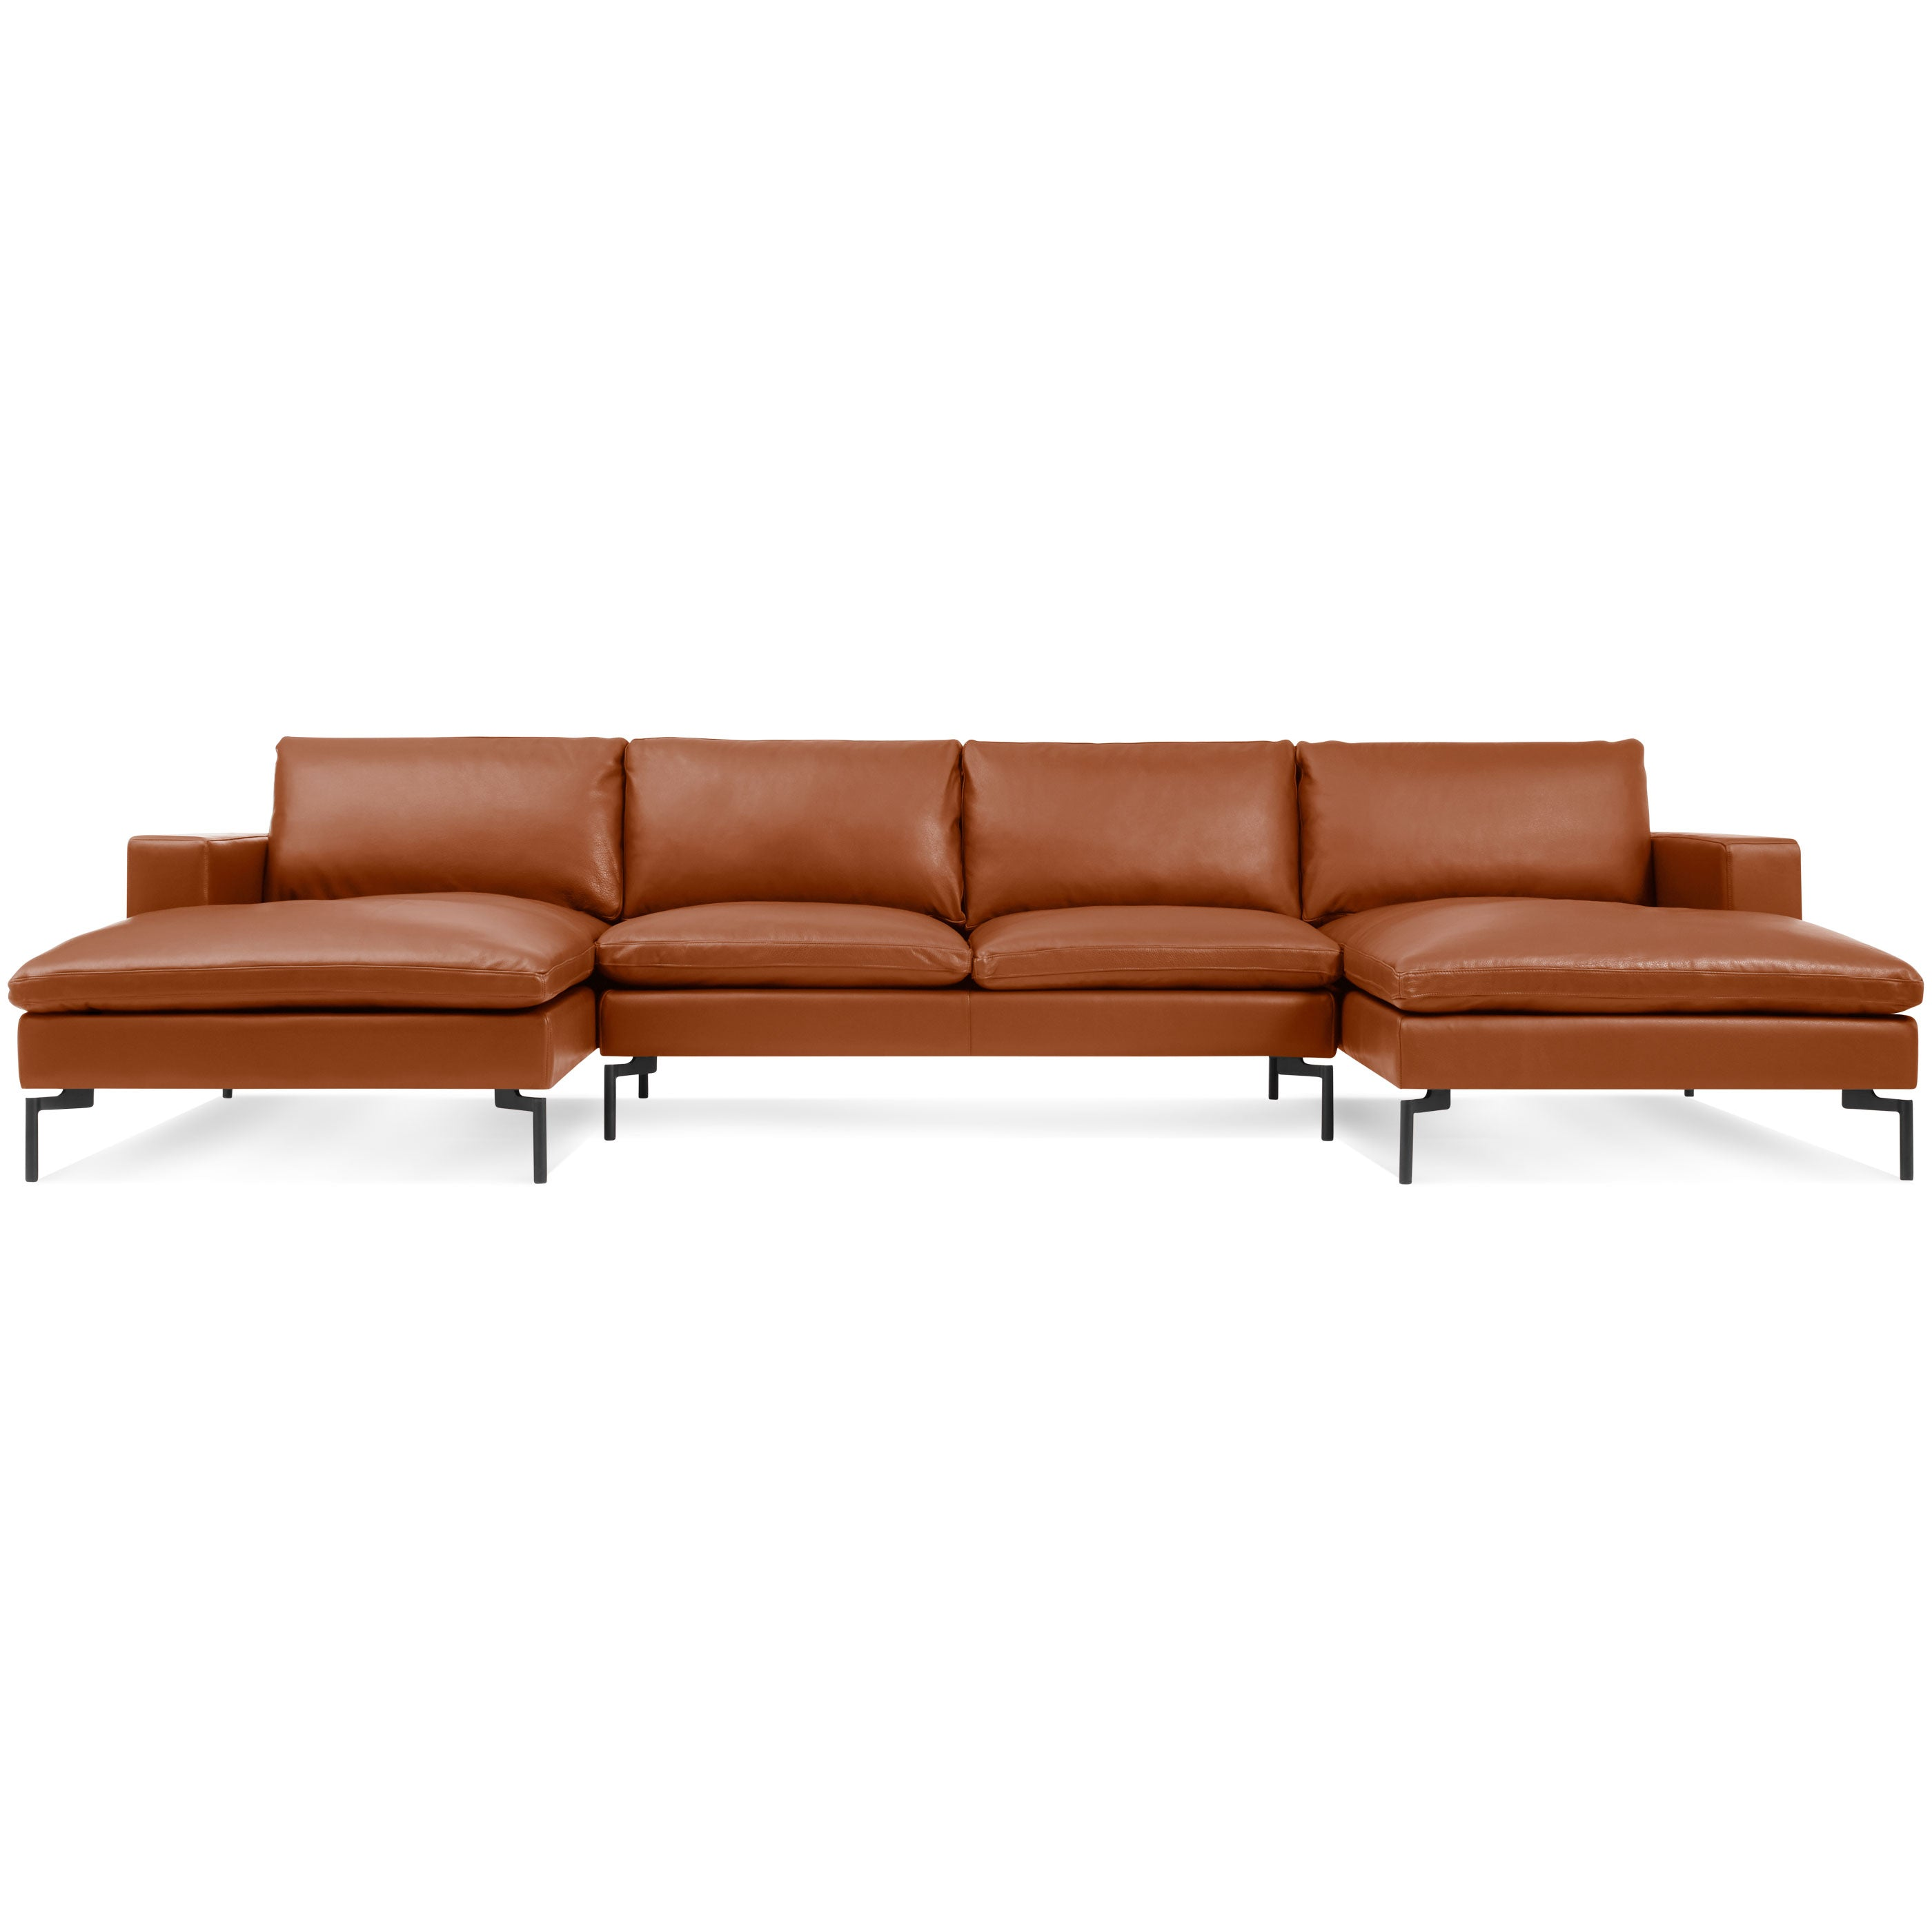 "New Standard 136"" Leather Sofa Sectional"